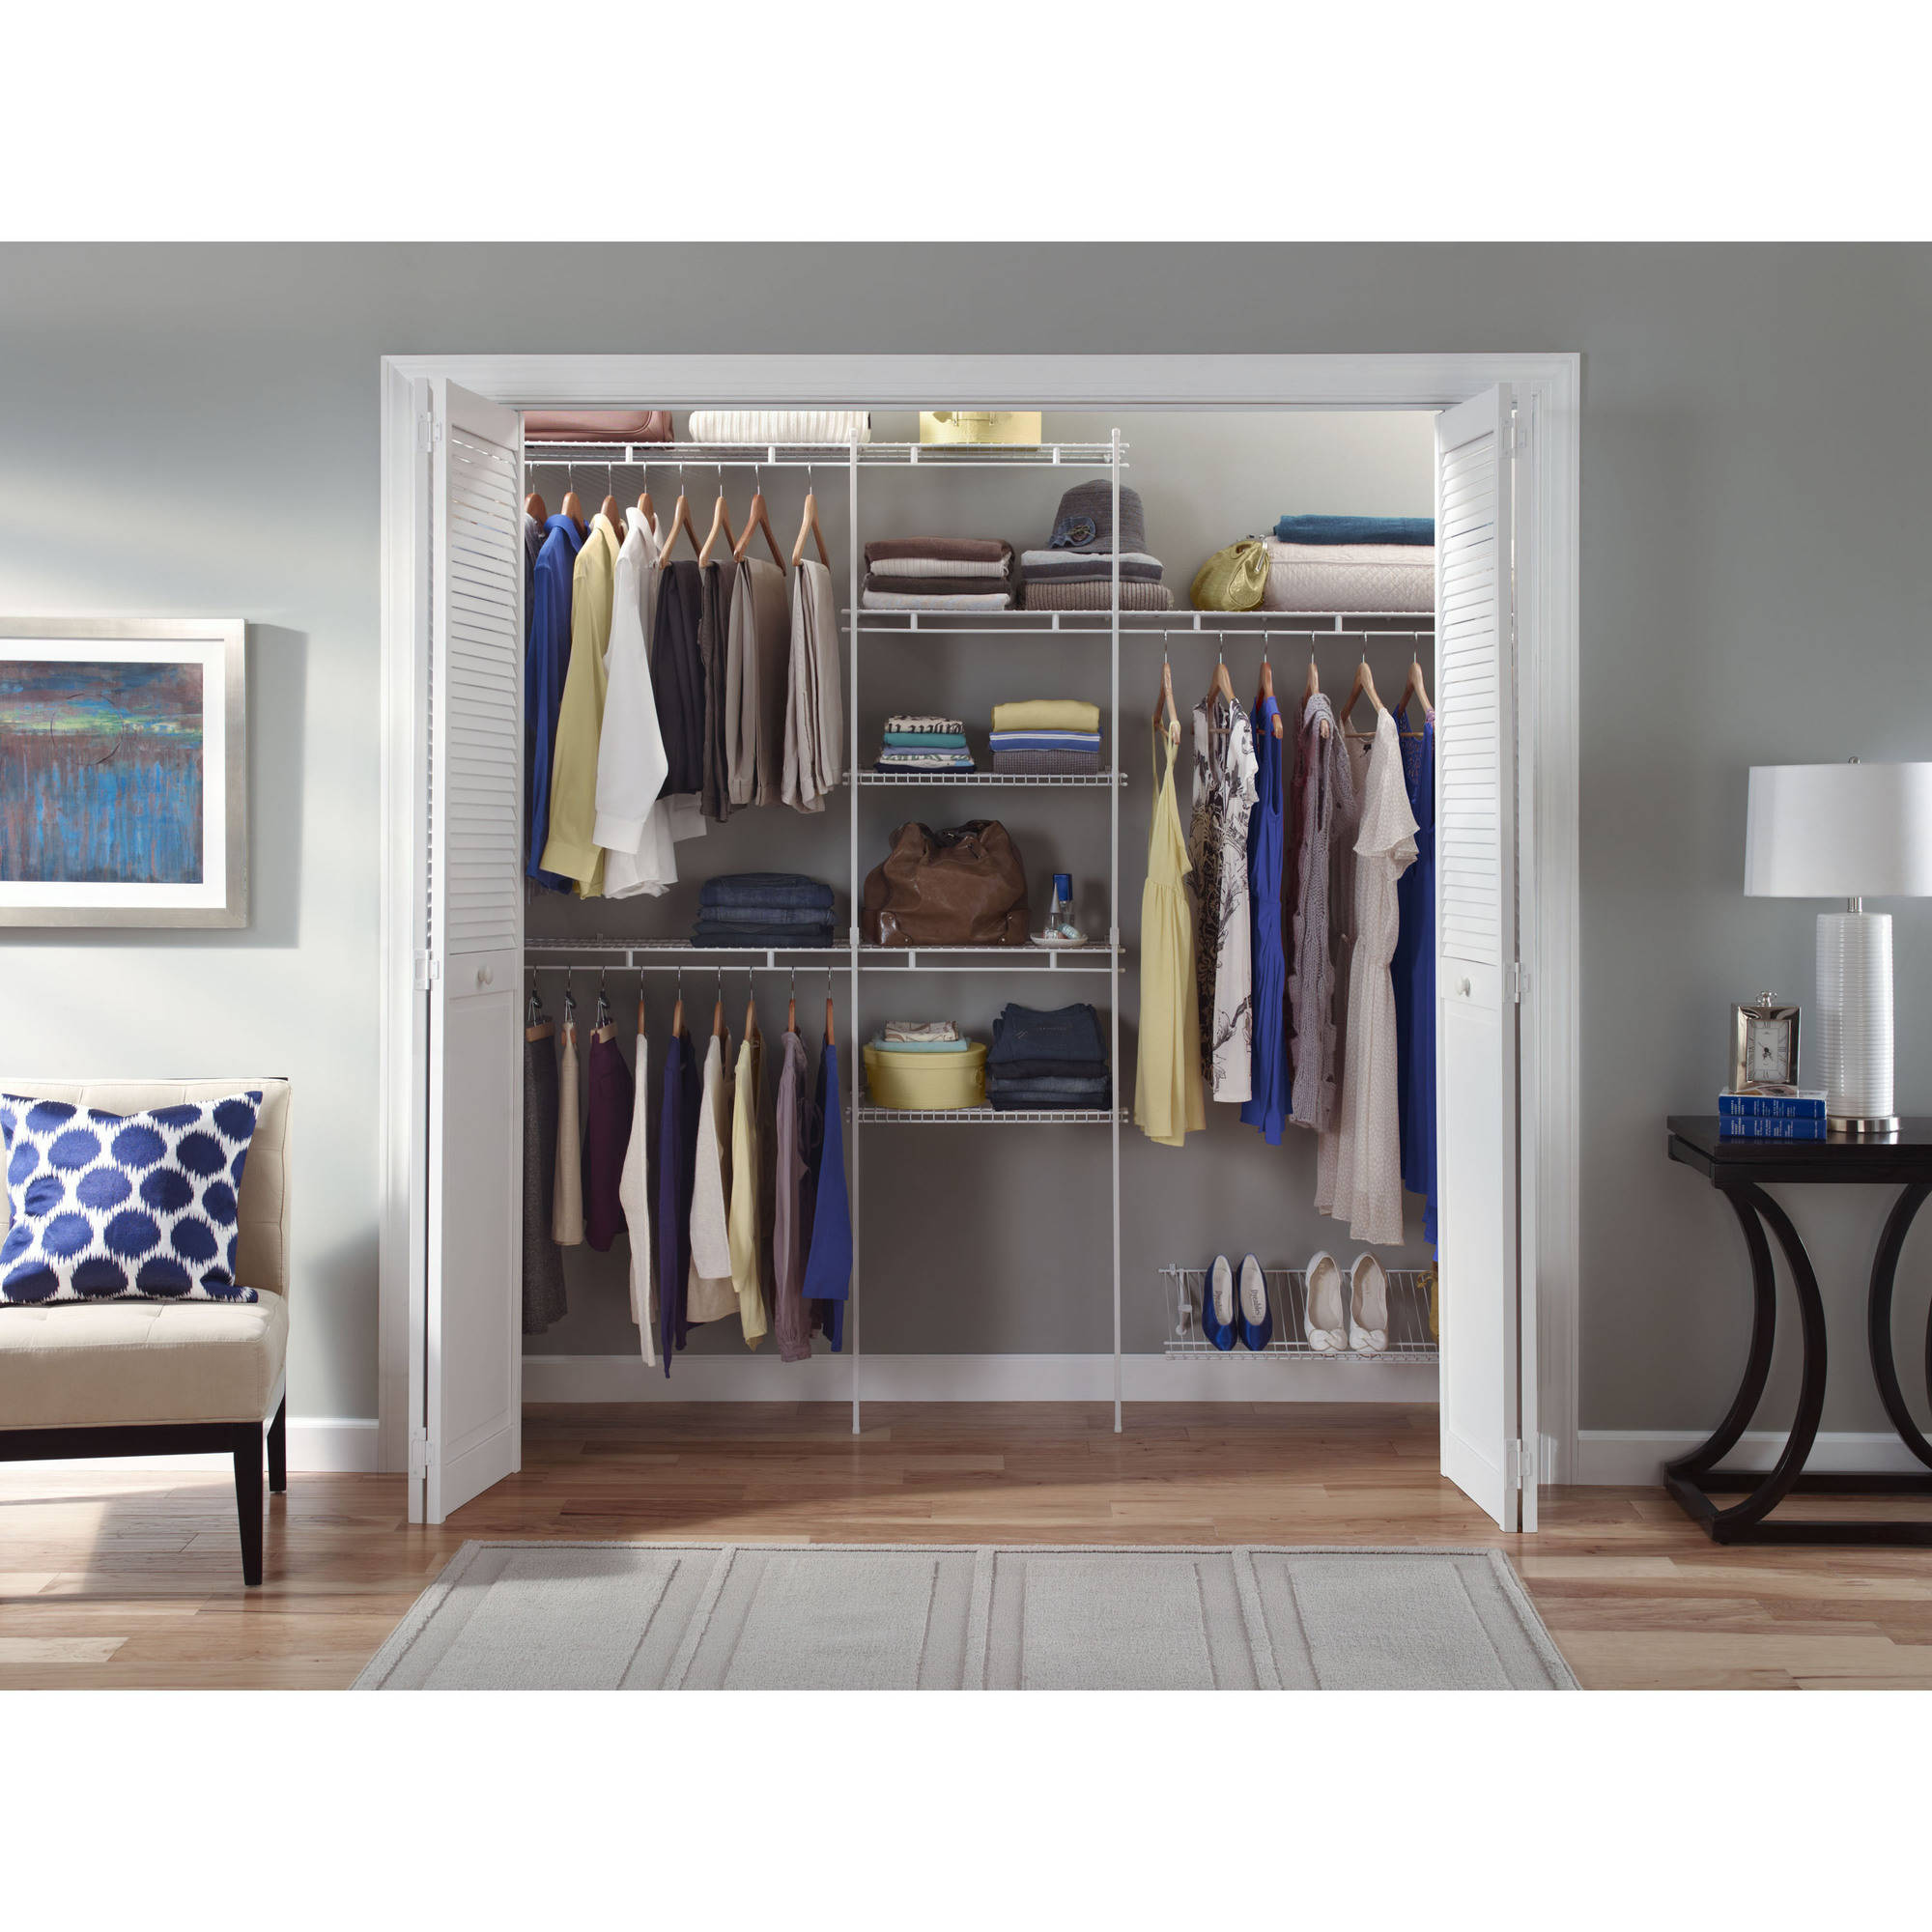 Agreeable closetmaid j hooks roselawnlutheran - Types of shoe storage solutions for the bedroom ...